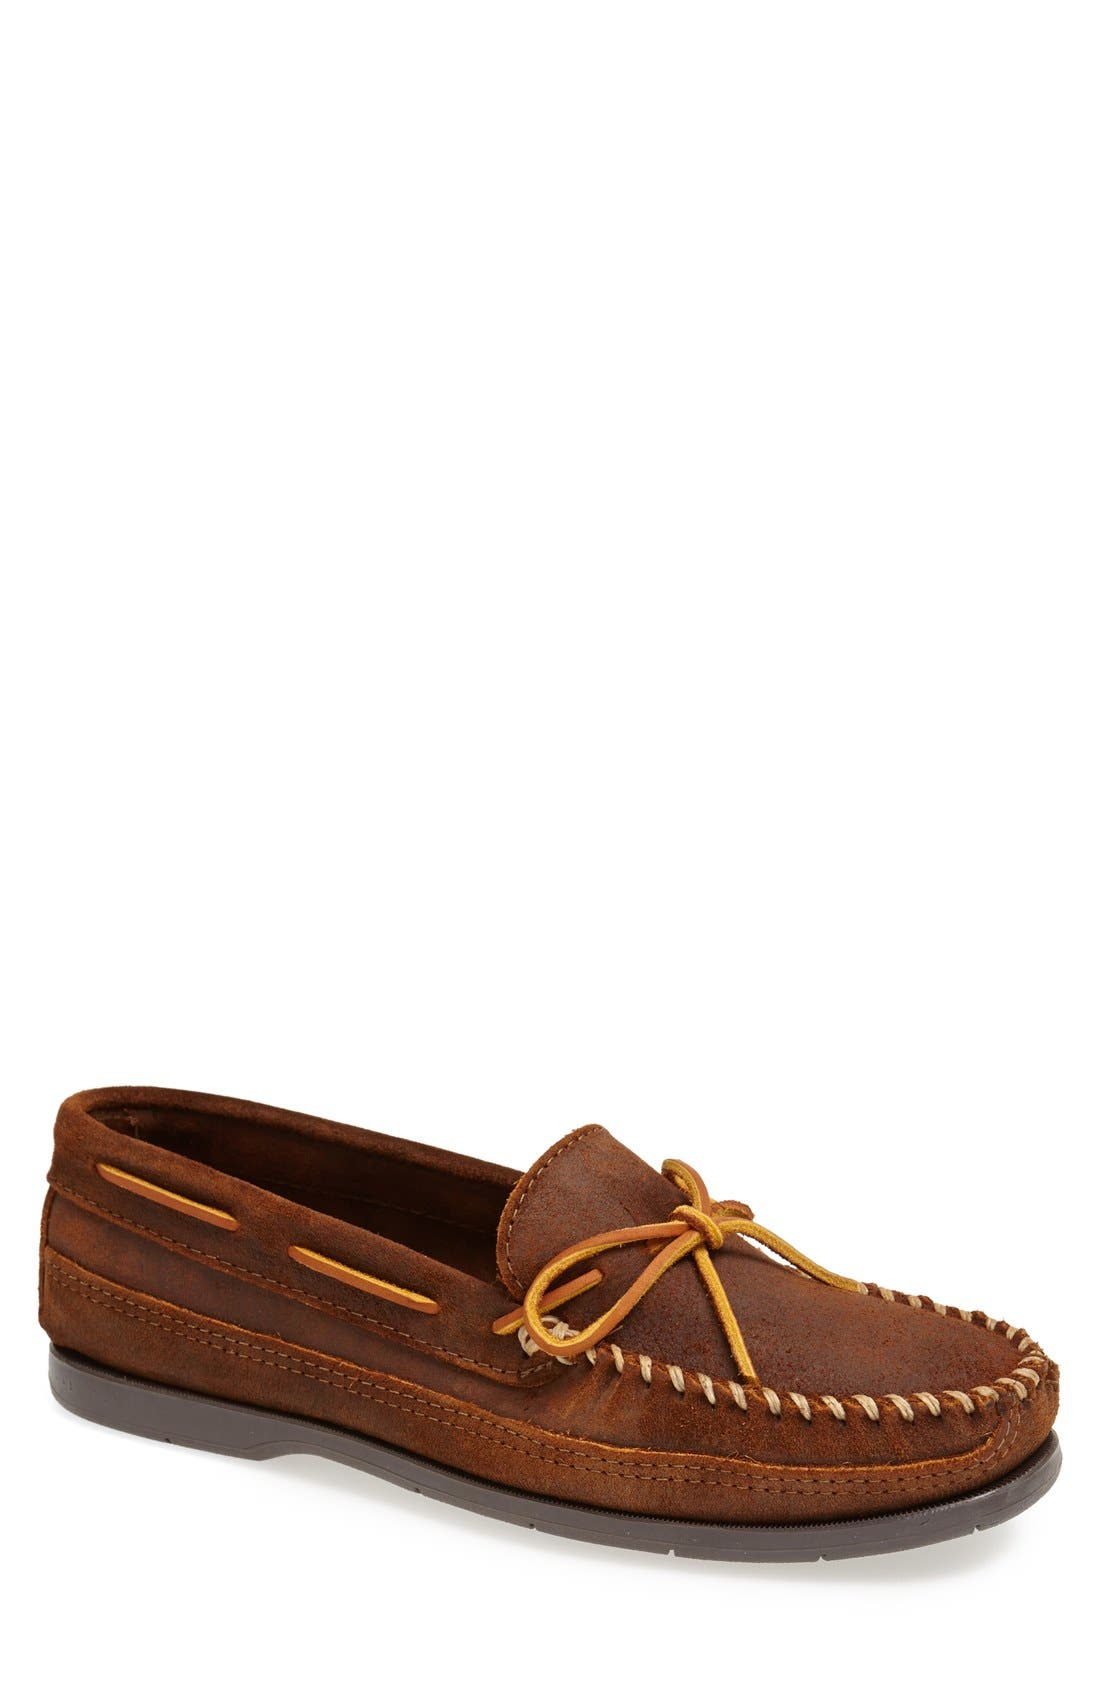 Leather Moccasin,                             Main thumbnail 1, color,                             212